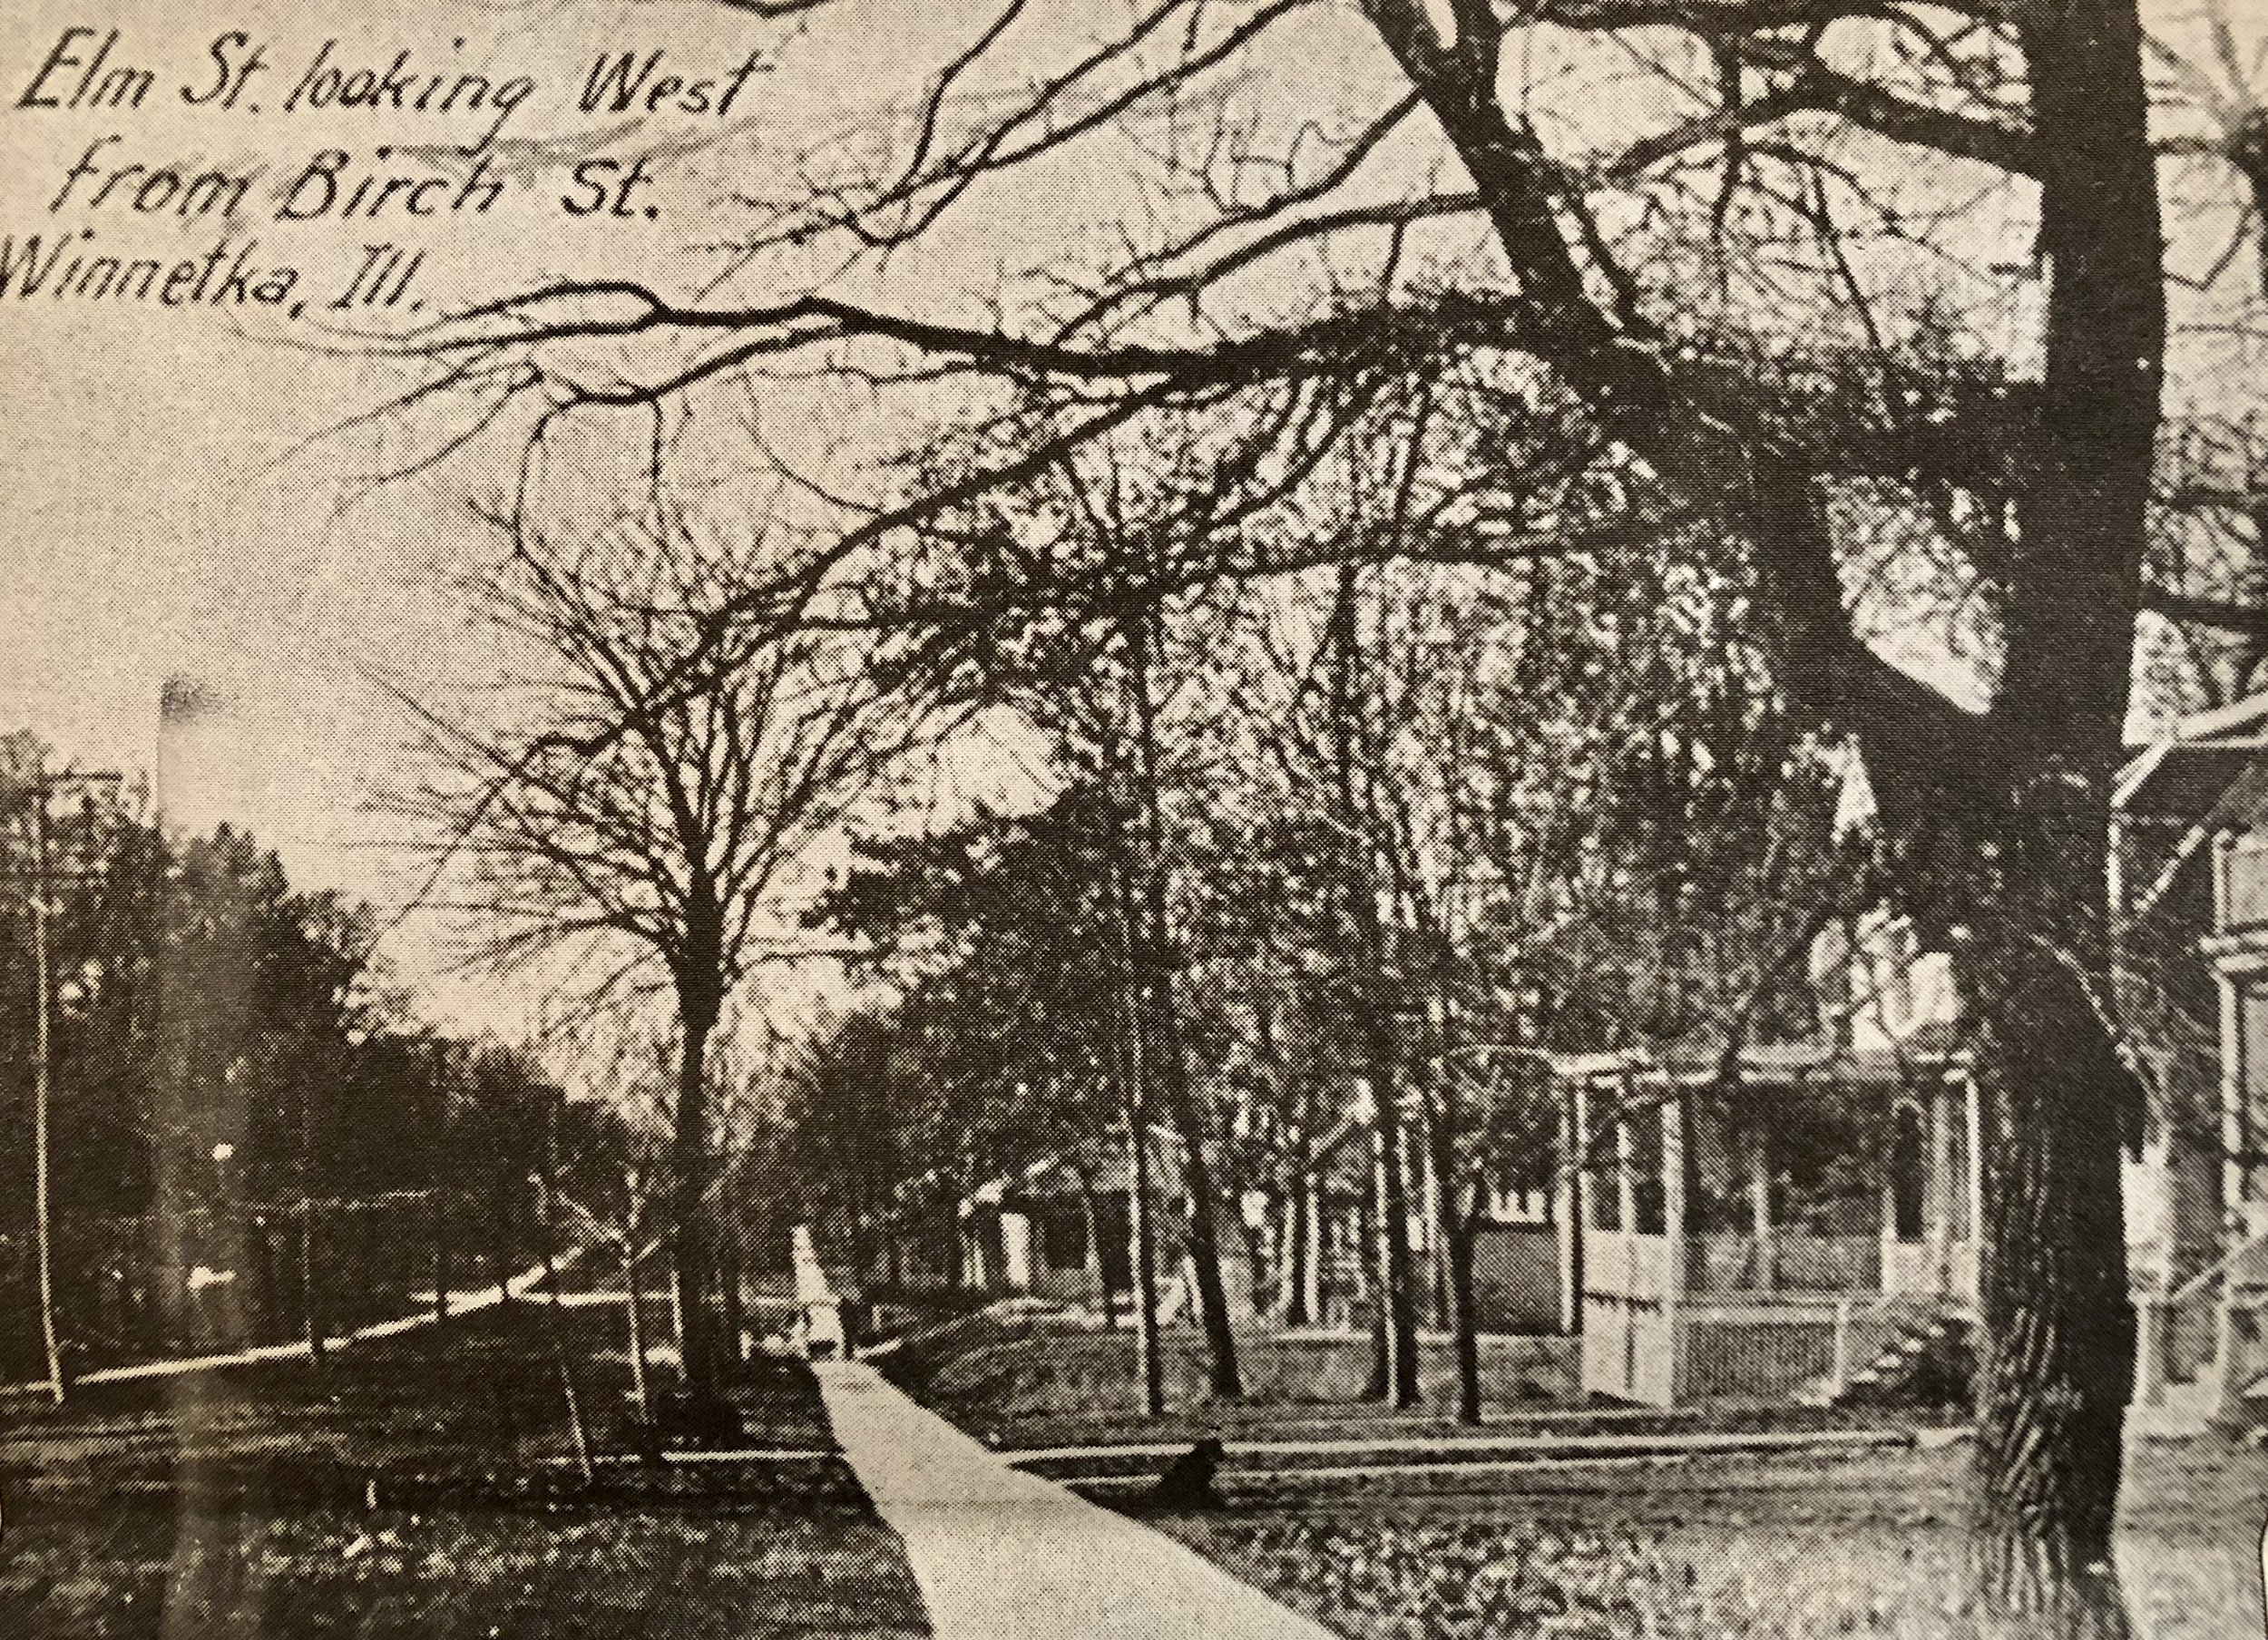 Elm Street & Birch Street Looking West circa 1920